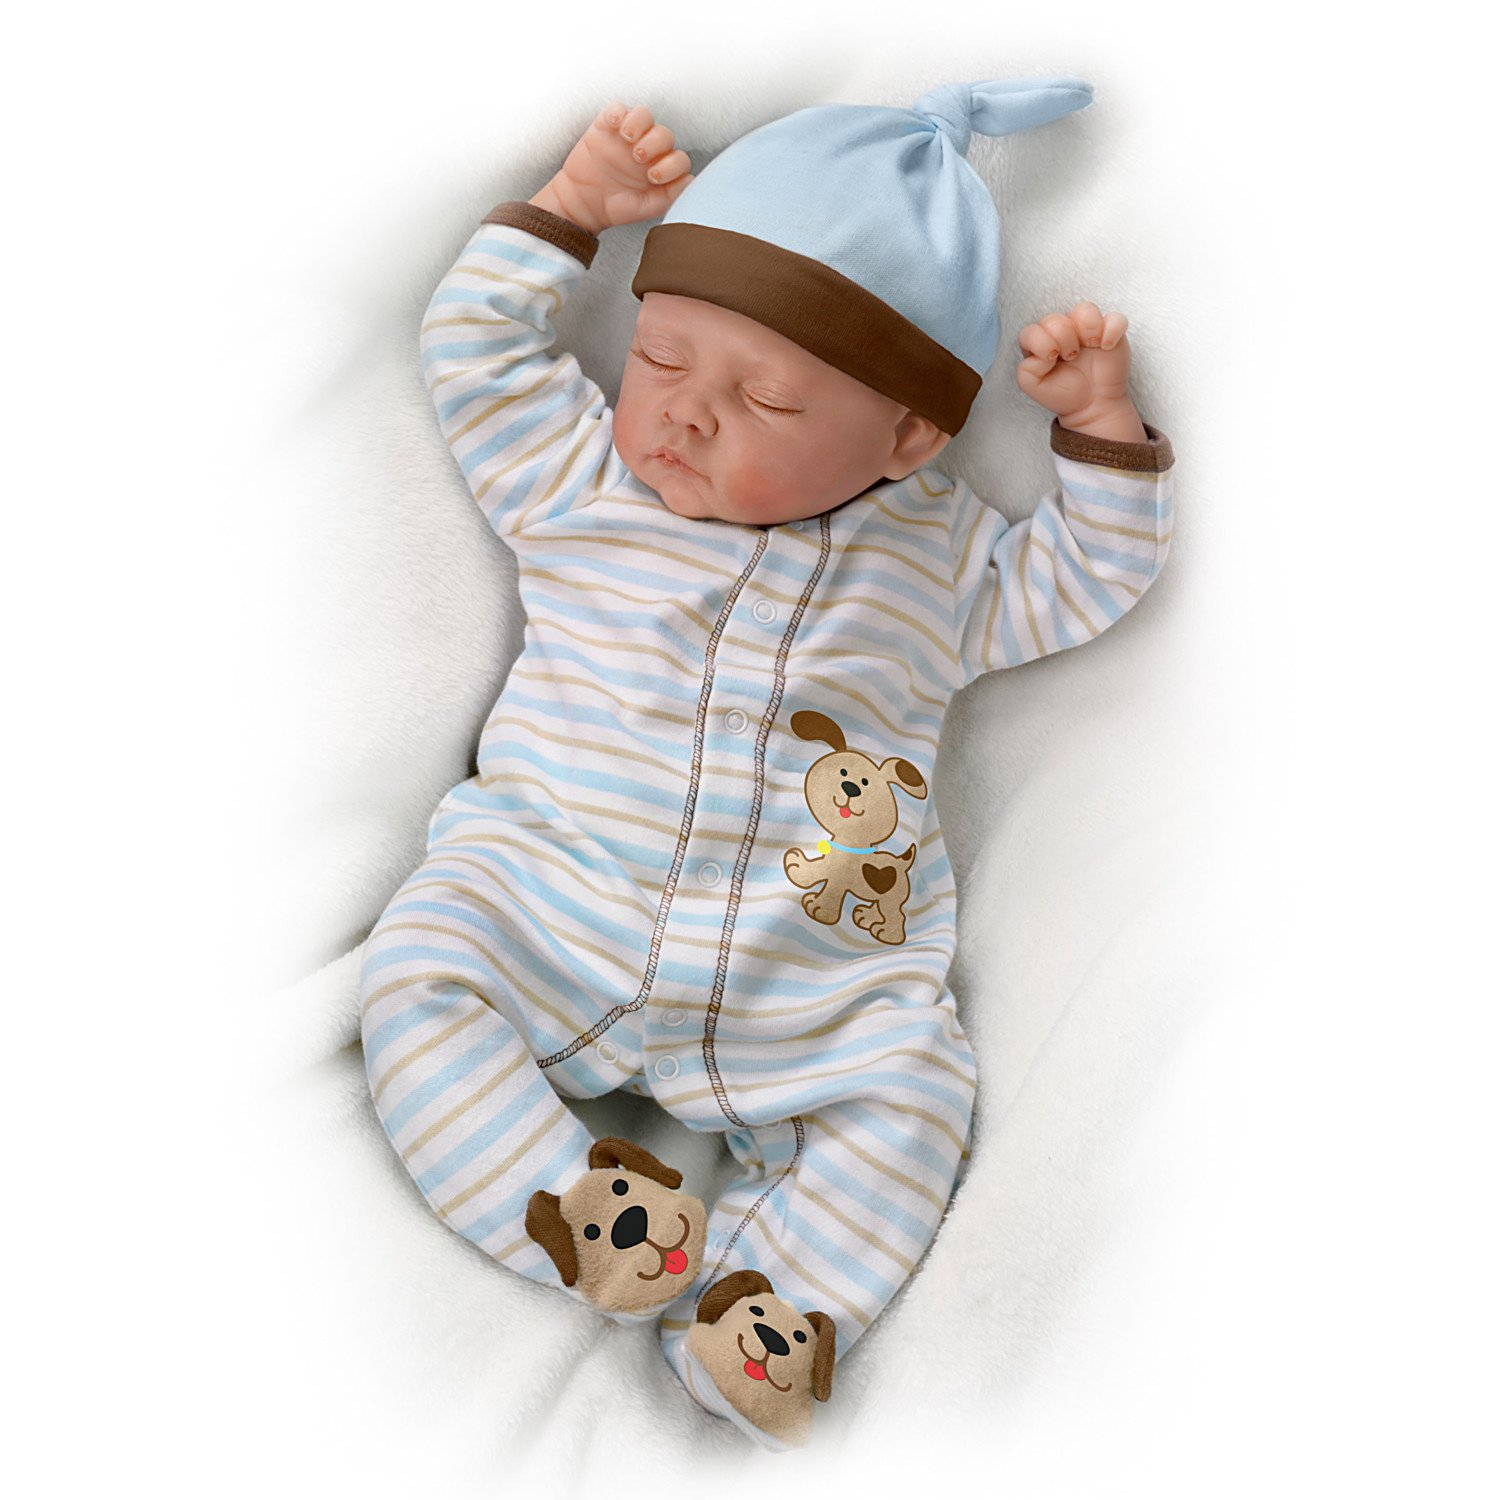 Sweet Dreams, Danny So Truly Real® Lifelike & Realistic Weighted Newborn Baby Boy Doll 19-inches by The Ashton-Drake Galleries by The Ashton-Drake Galleries